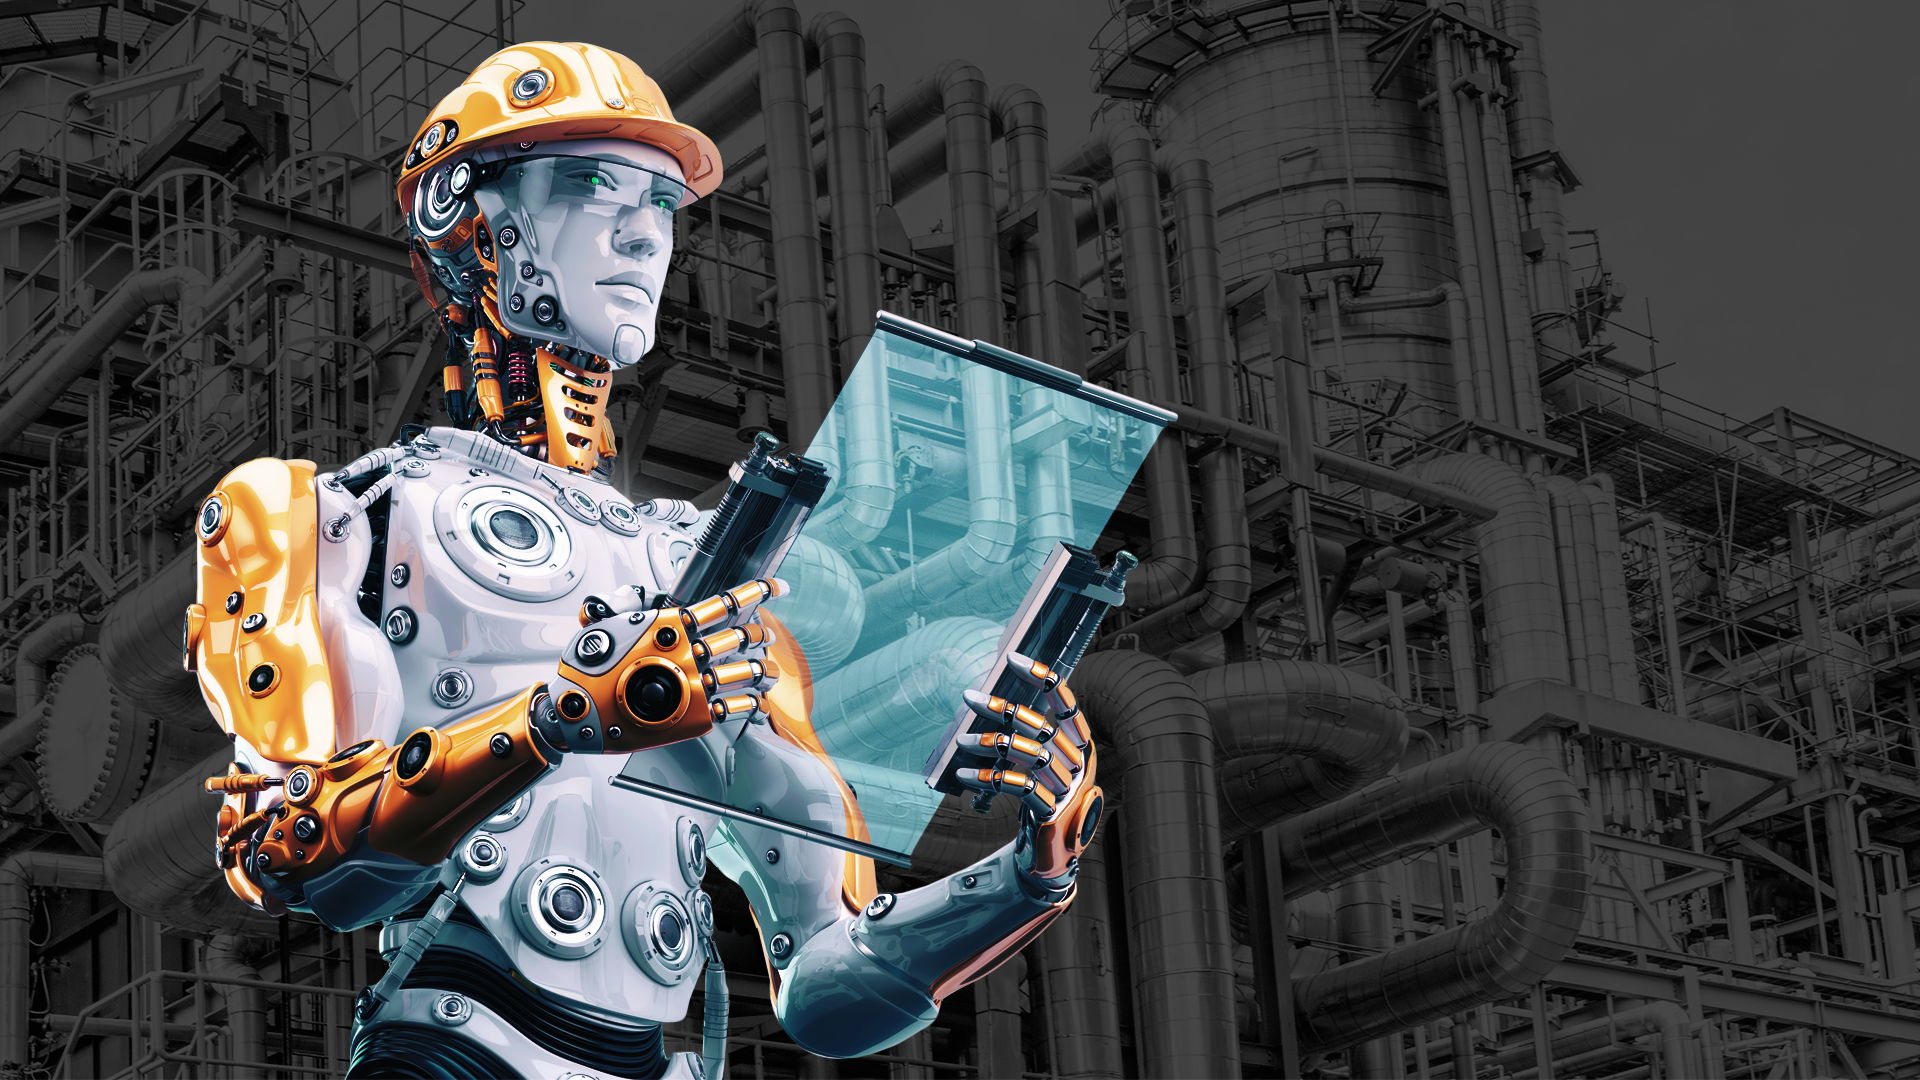 The phenomenon of robotization is more accurately characterized by a shift in the type of jobs available: it creates an opportunity for us to let robots do the more routine, mundane or even dangerous jobs, while we can focus on creating value and insights.